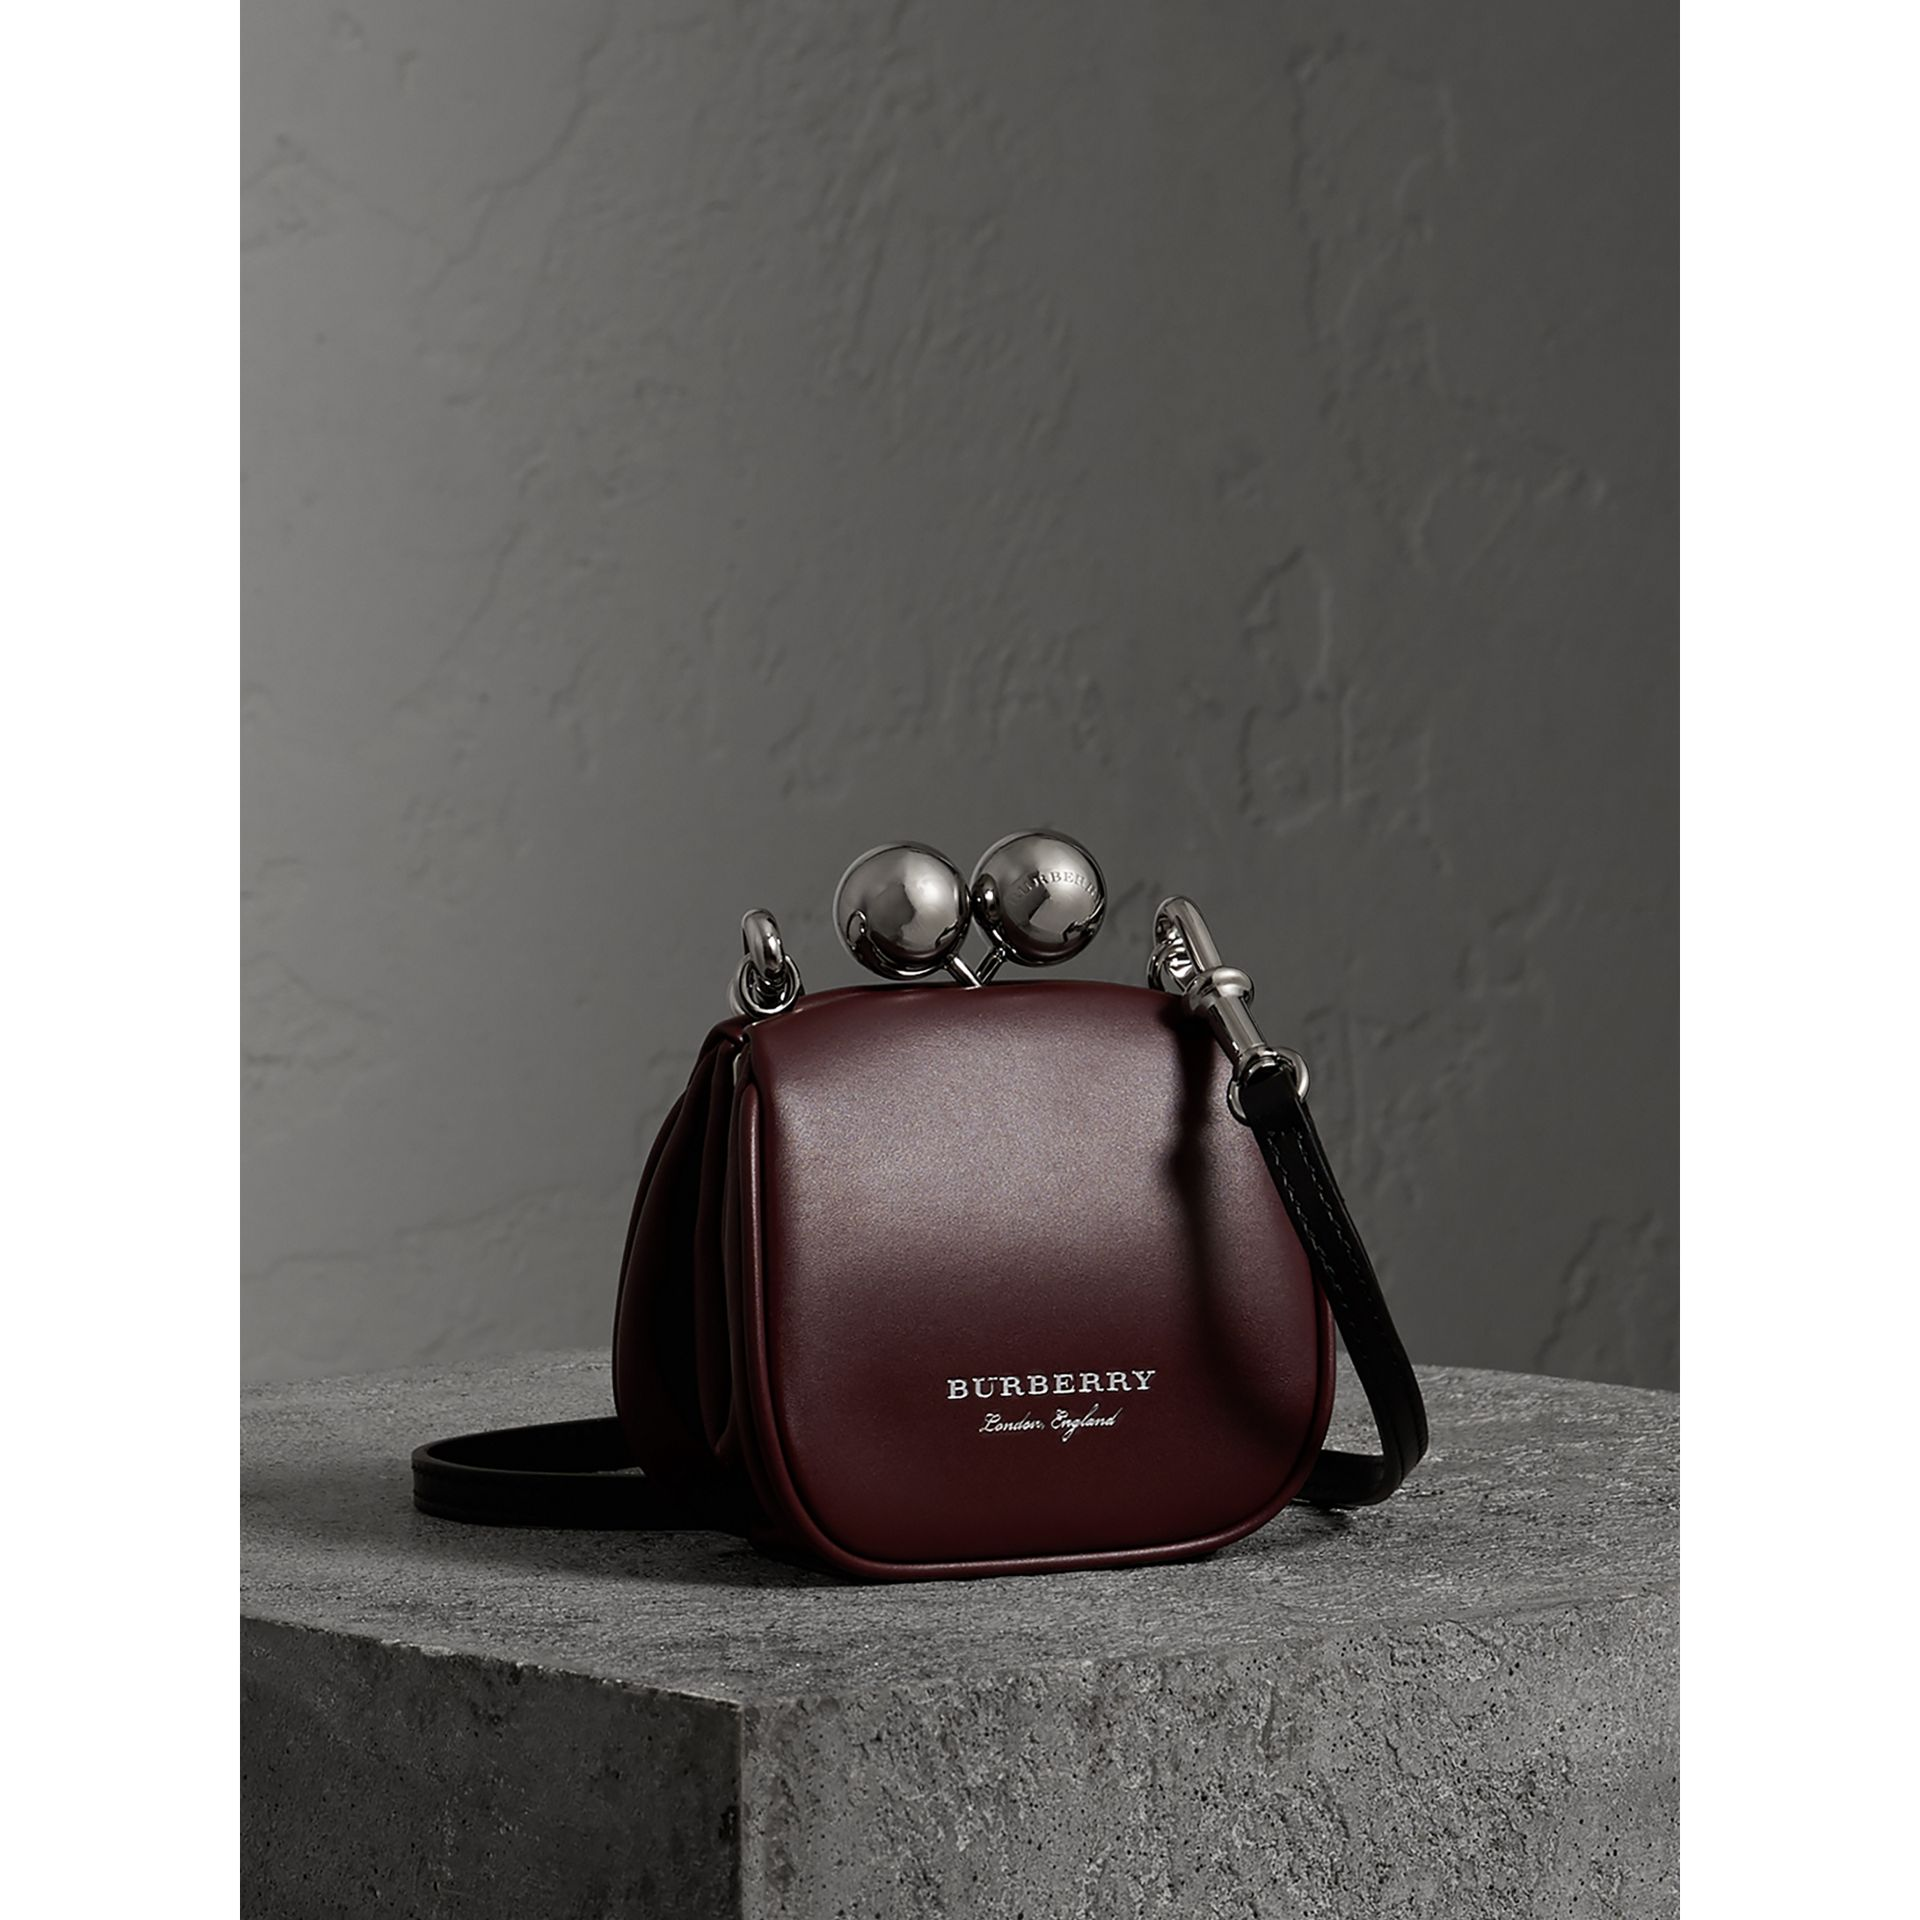 Mini Two-tone Leather Frame Bag in Burgundy - Women | Burberry - gallery image 6